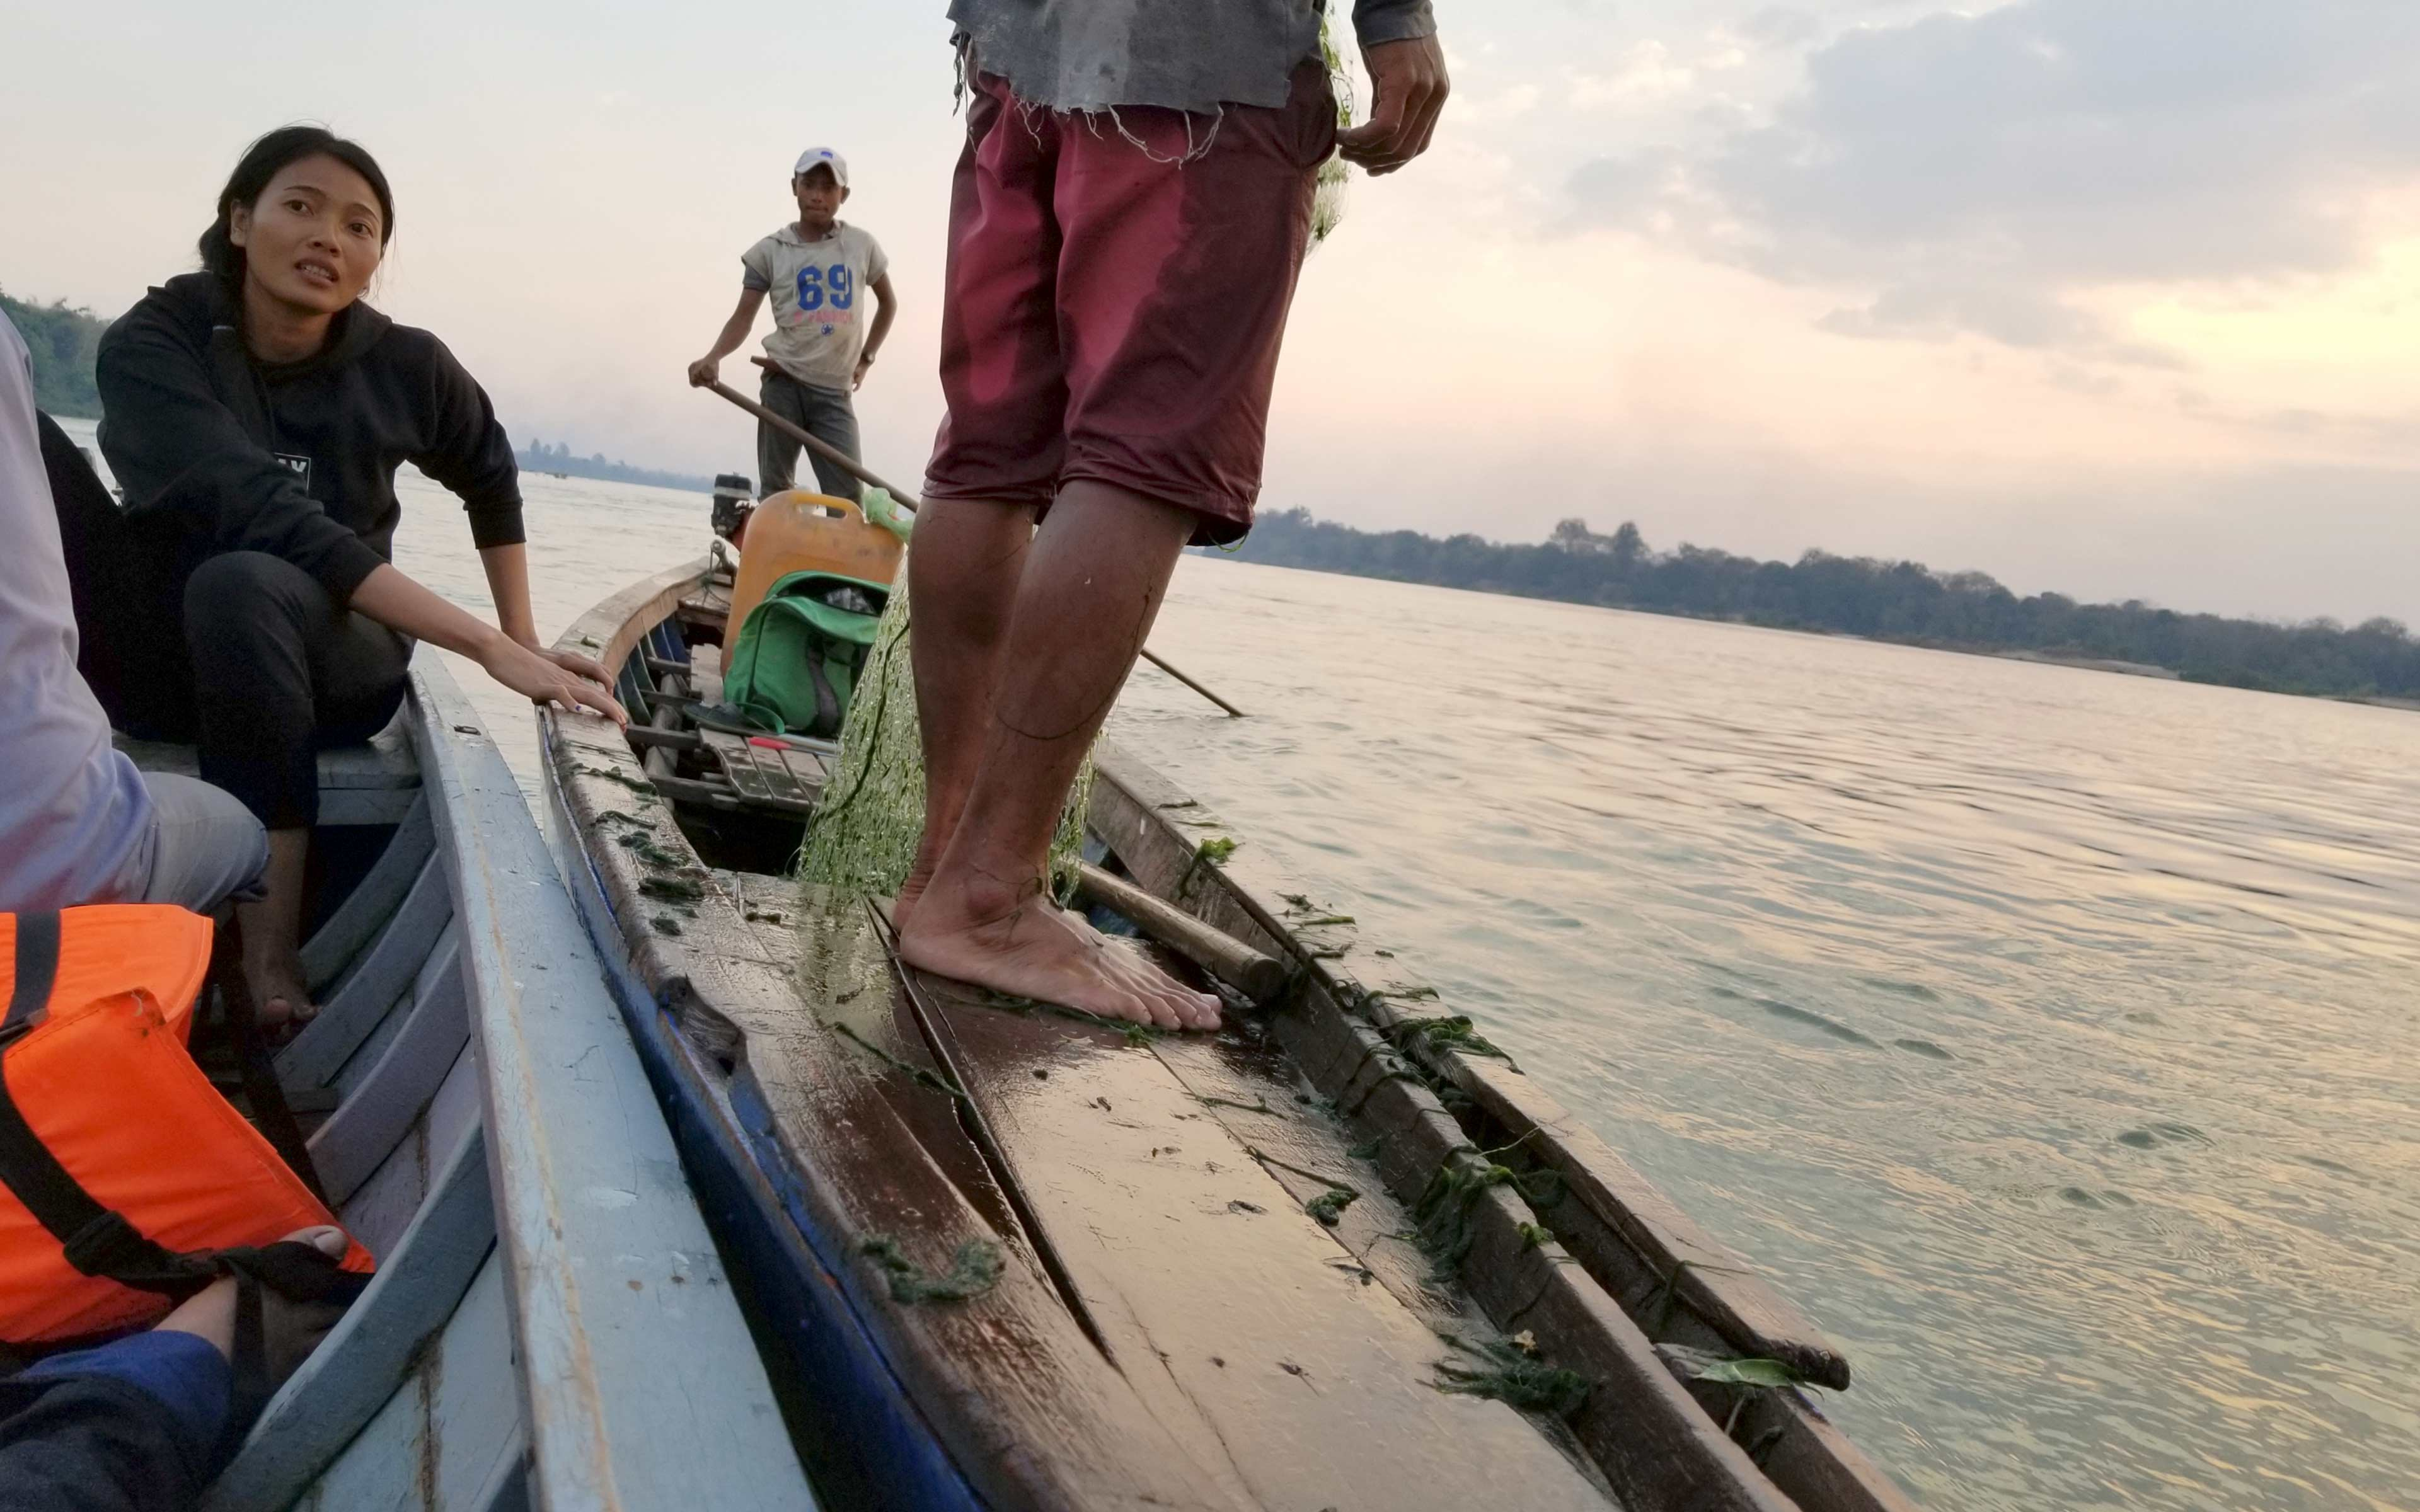 """Hong Rany leads patrols on the river to enforce fishing regulations. """"It's a tough job,"""" she says, """"But in the end, I like it. That's why I want to do it."""""""